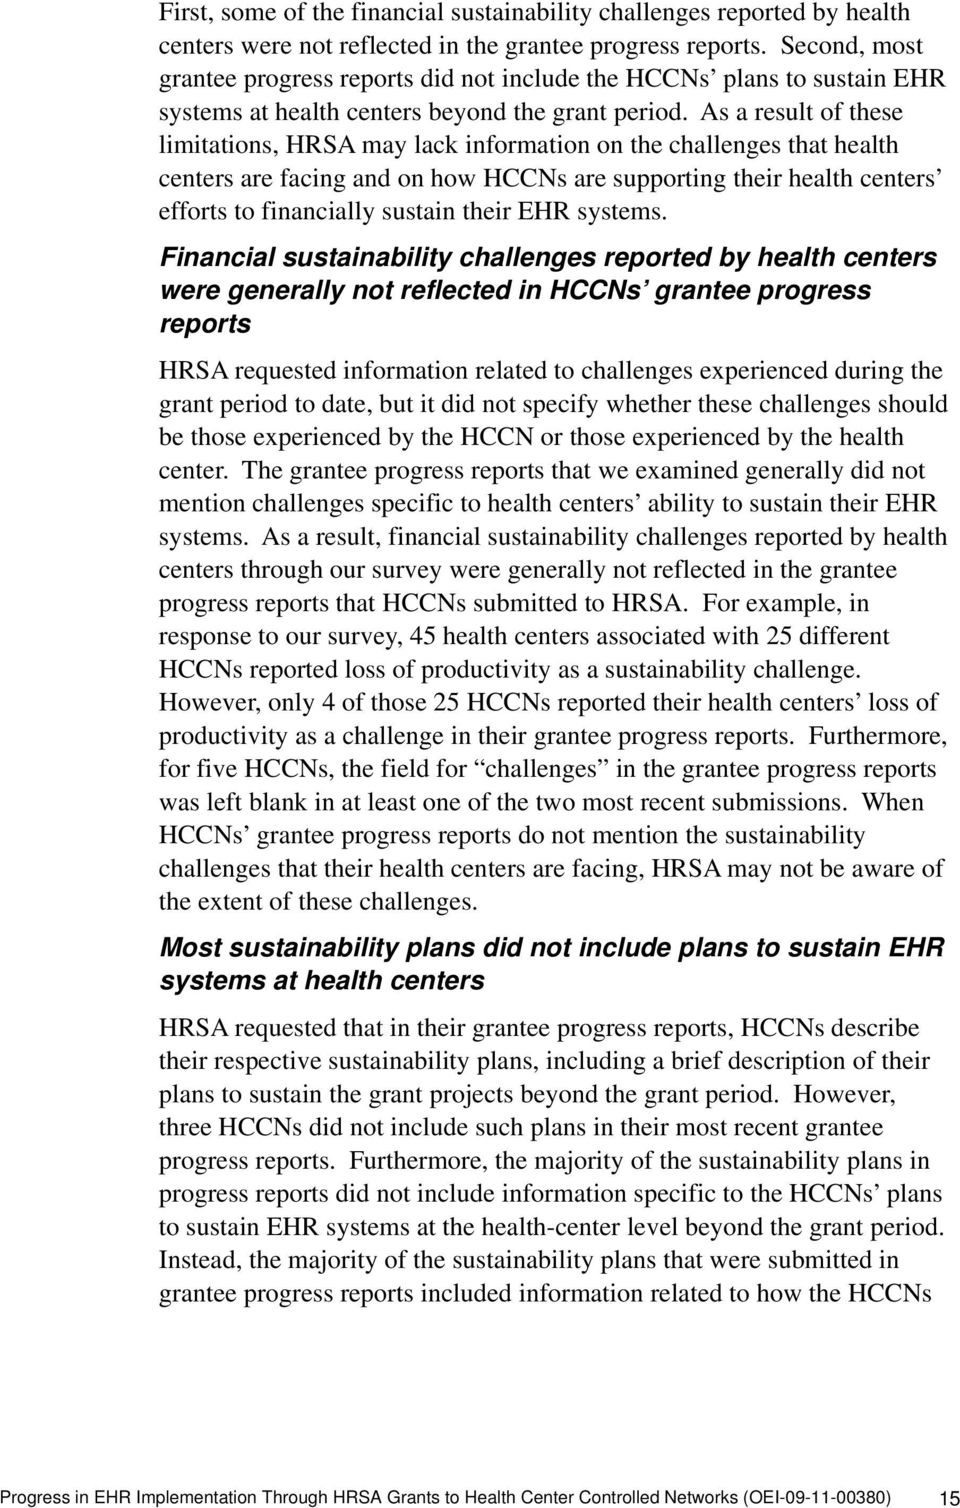 As a result of these limitations, HRSA may lack information on the challenges that health centers are facing and on how HCCNs are supporting their health centers efforts to financially sustain their